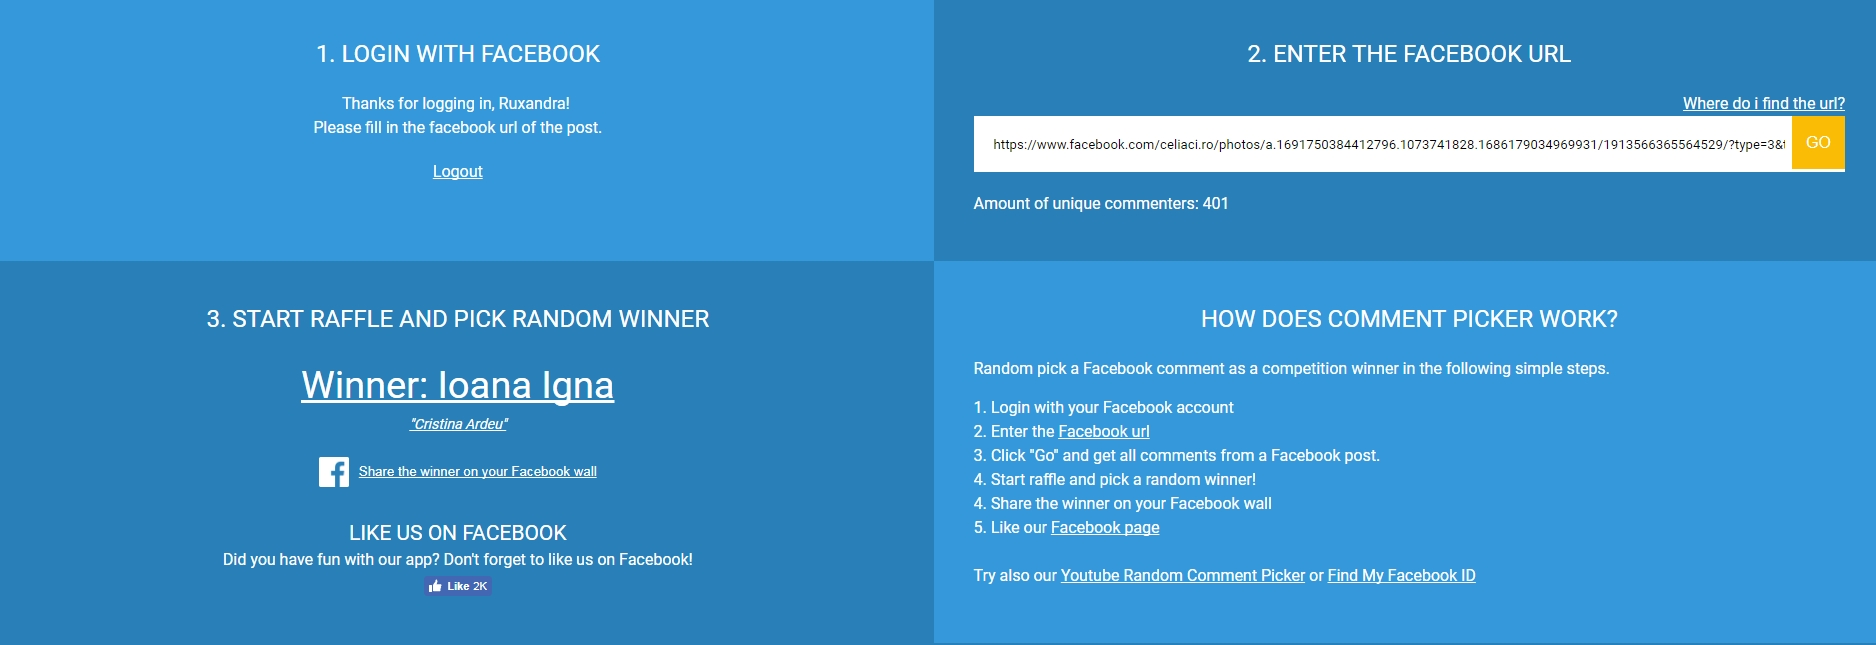 003416-Random Comment Picker for Facebook comments